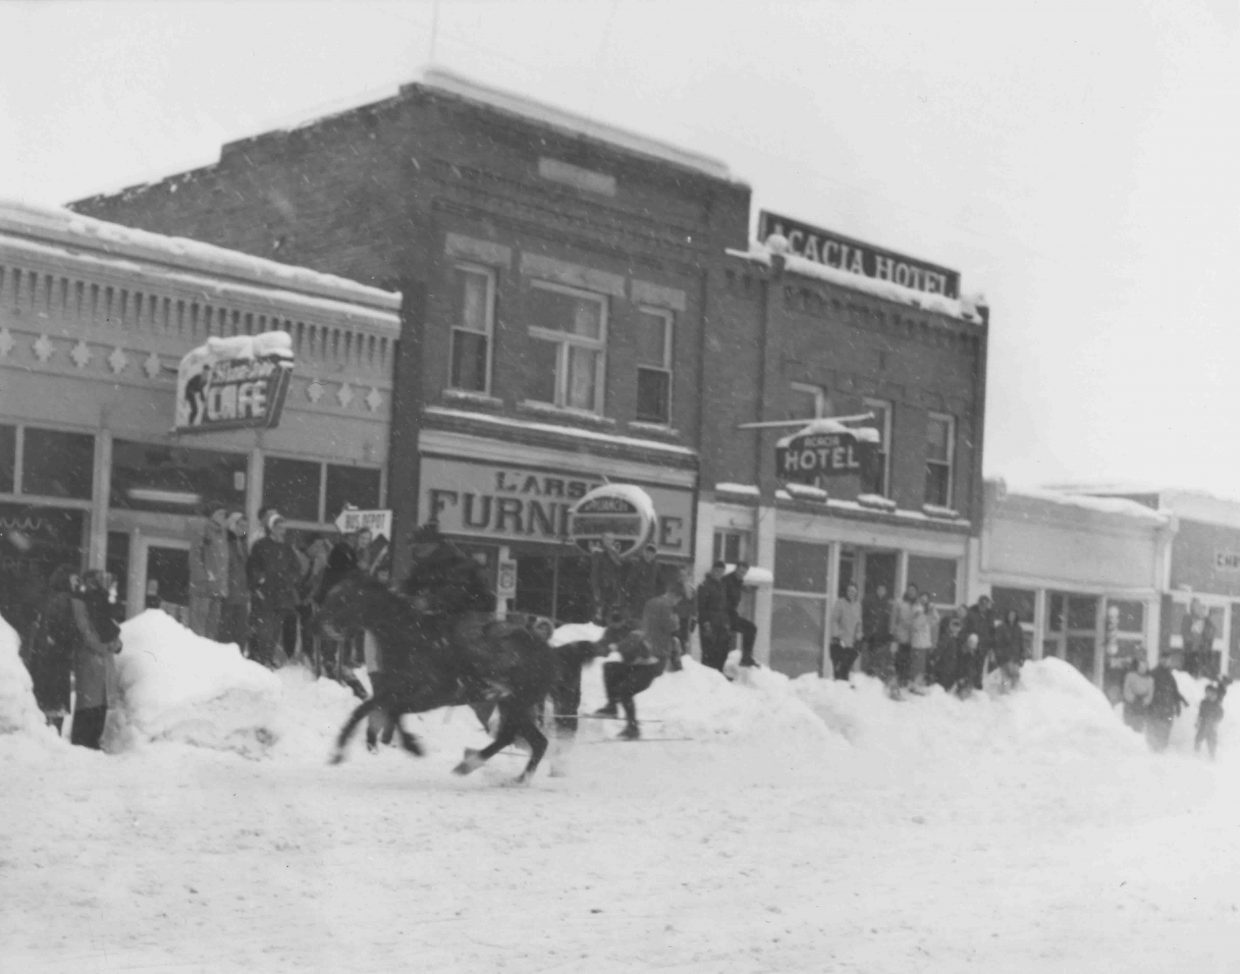 The Tread of Pioneers Museum will offer free Downtown Historical Walking Tours throughout the summer to talk about Steamboat Springs' past.